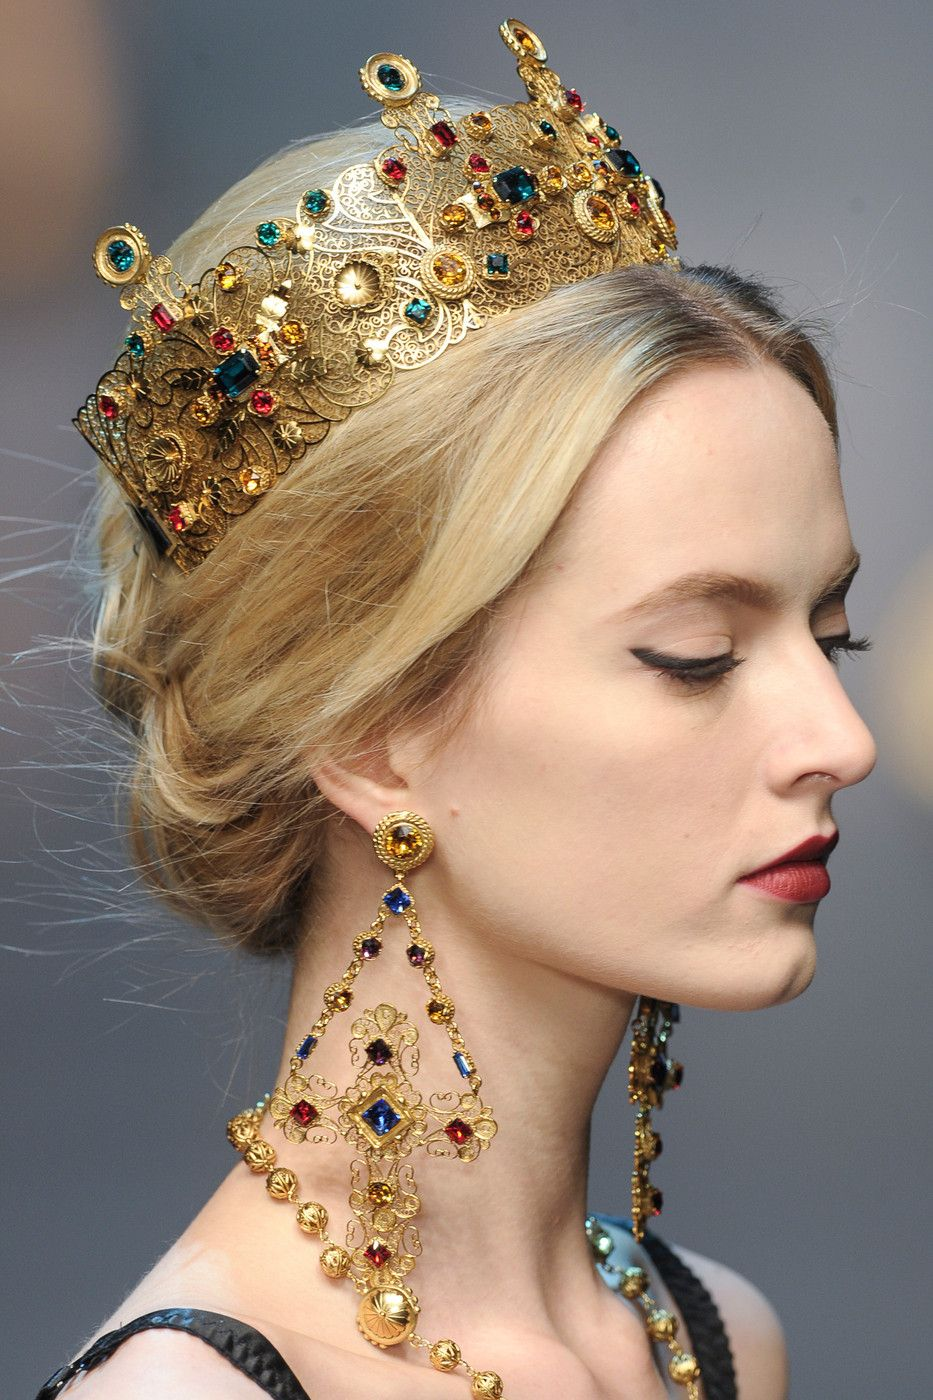 Dolce   Gabbana, 2013   stunning jewelry, crown. (Every girl should own a  crown and matching earrings)! 397b34305c